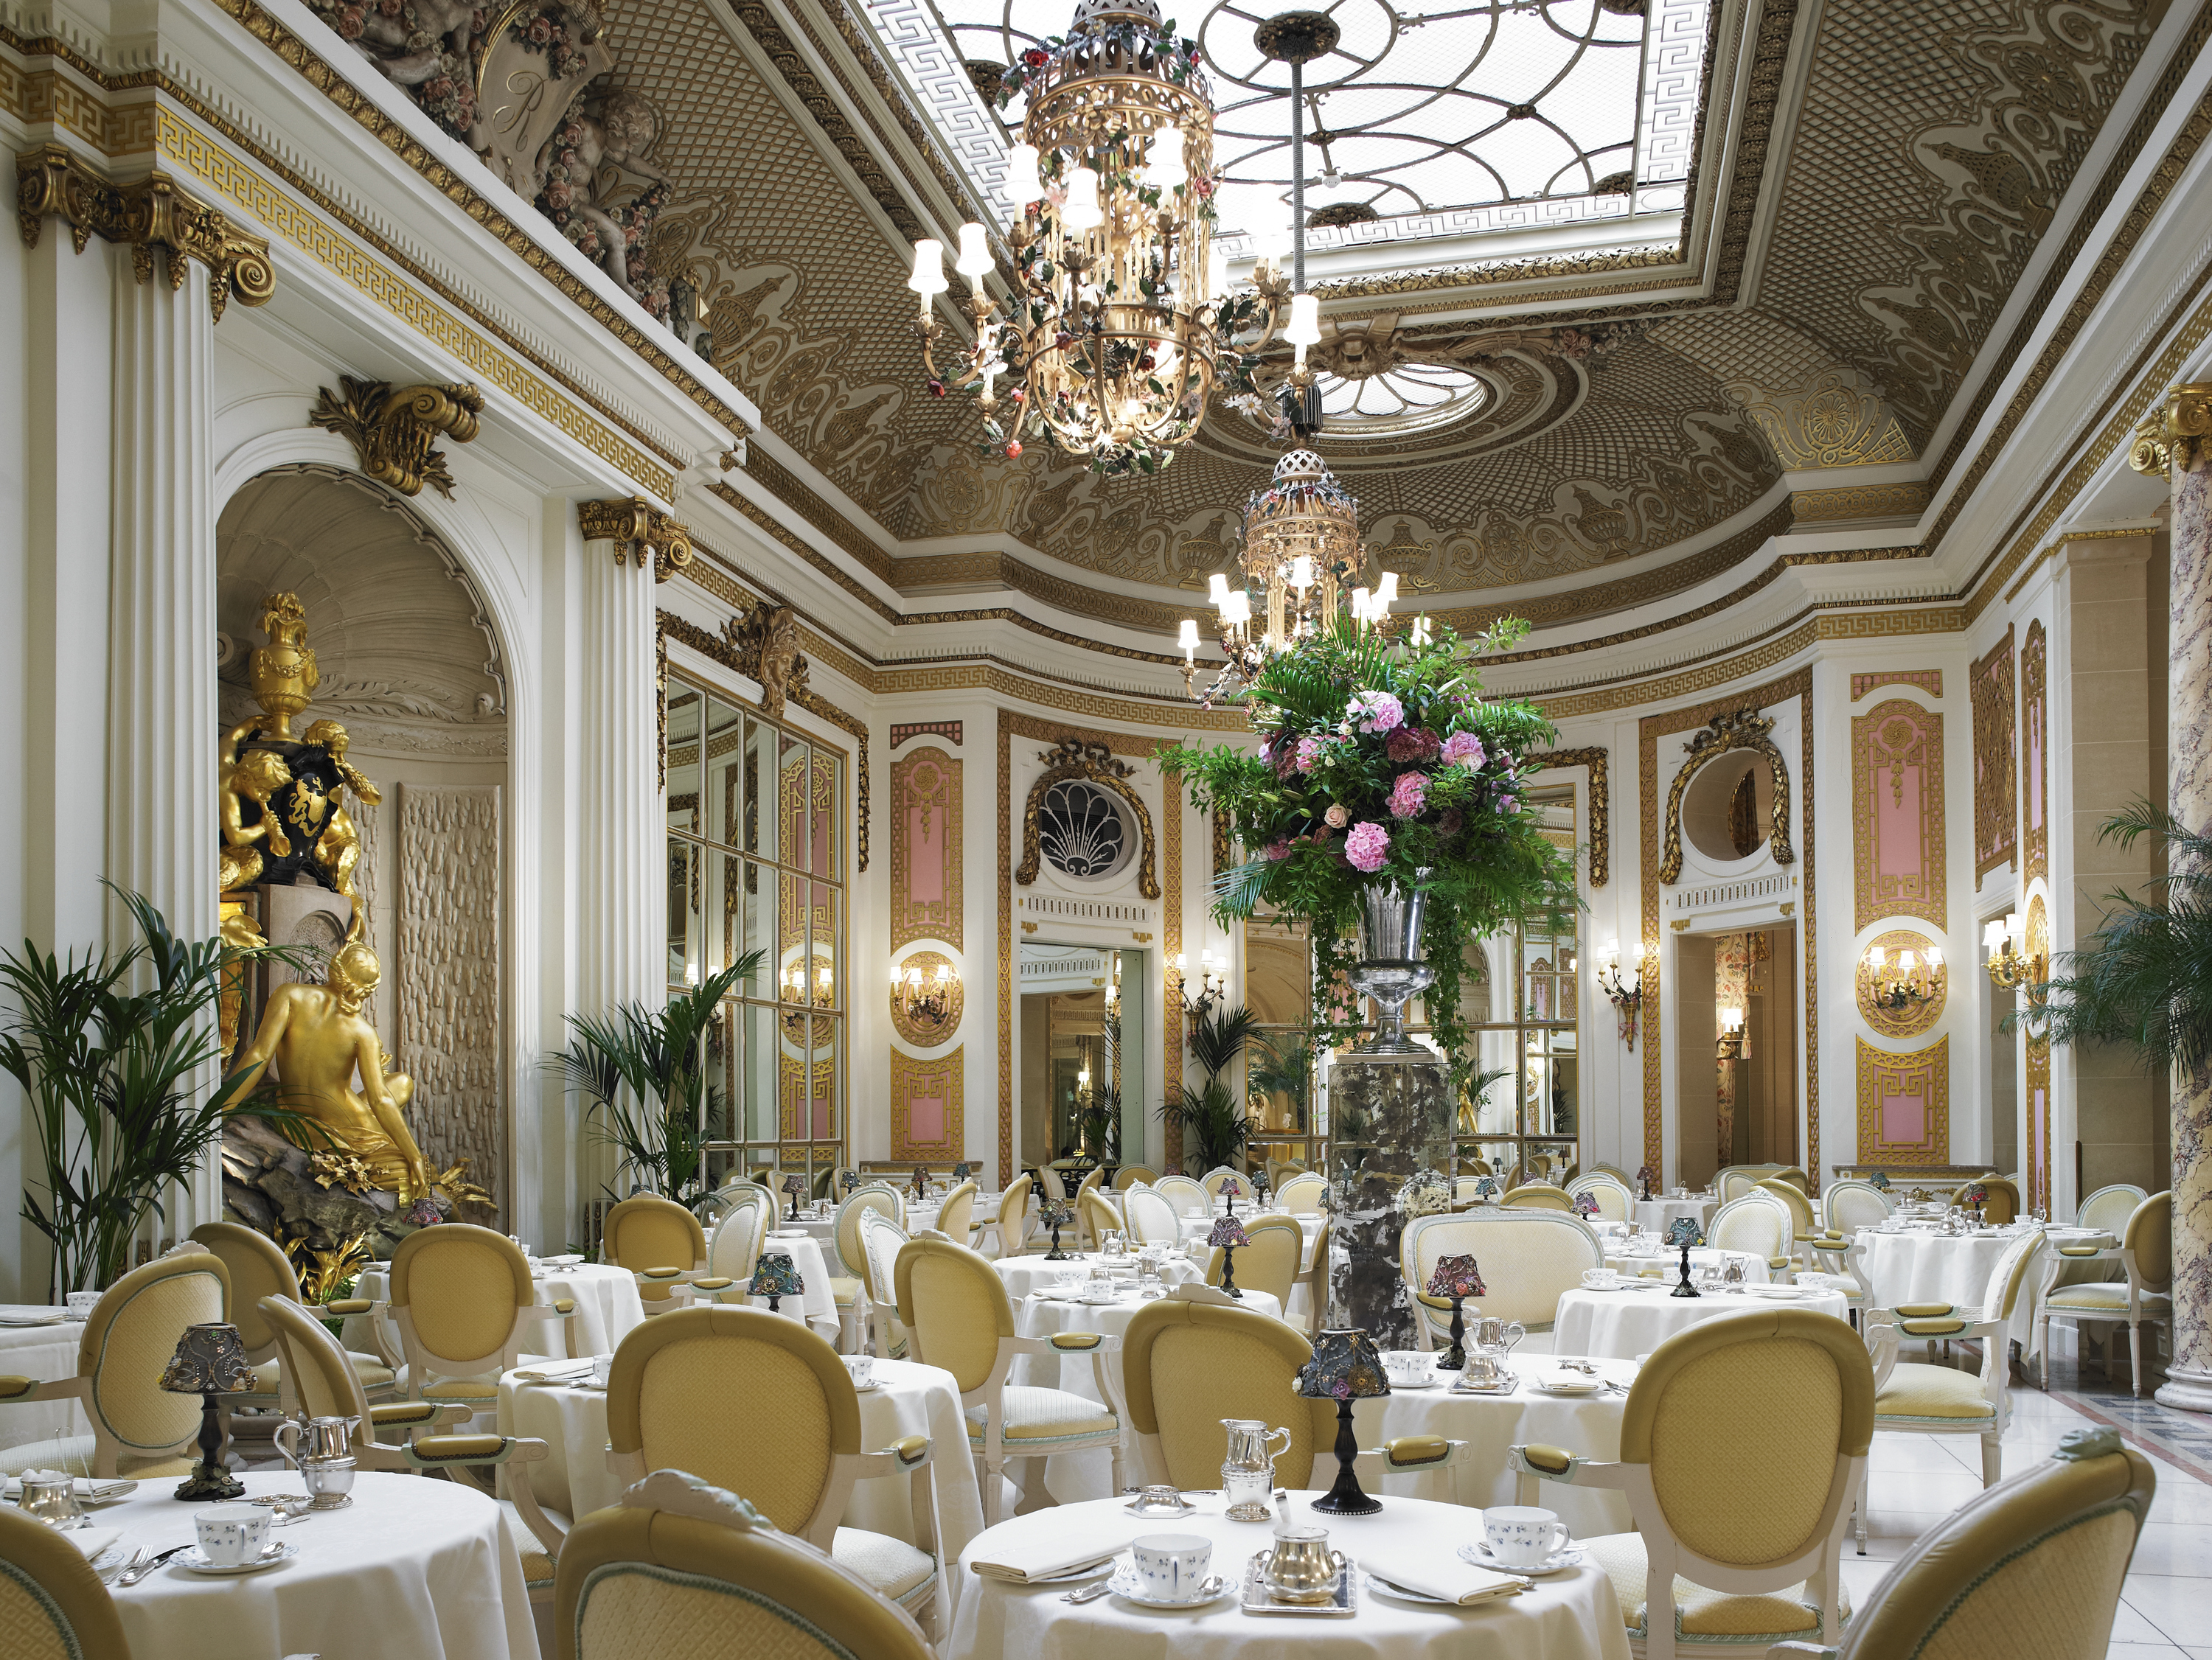 Palm Court at the Ritz